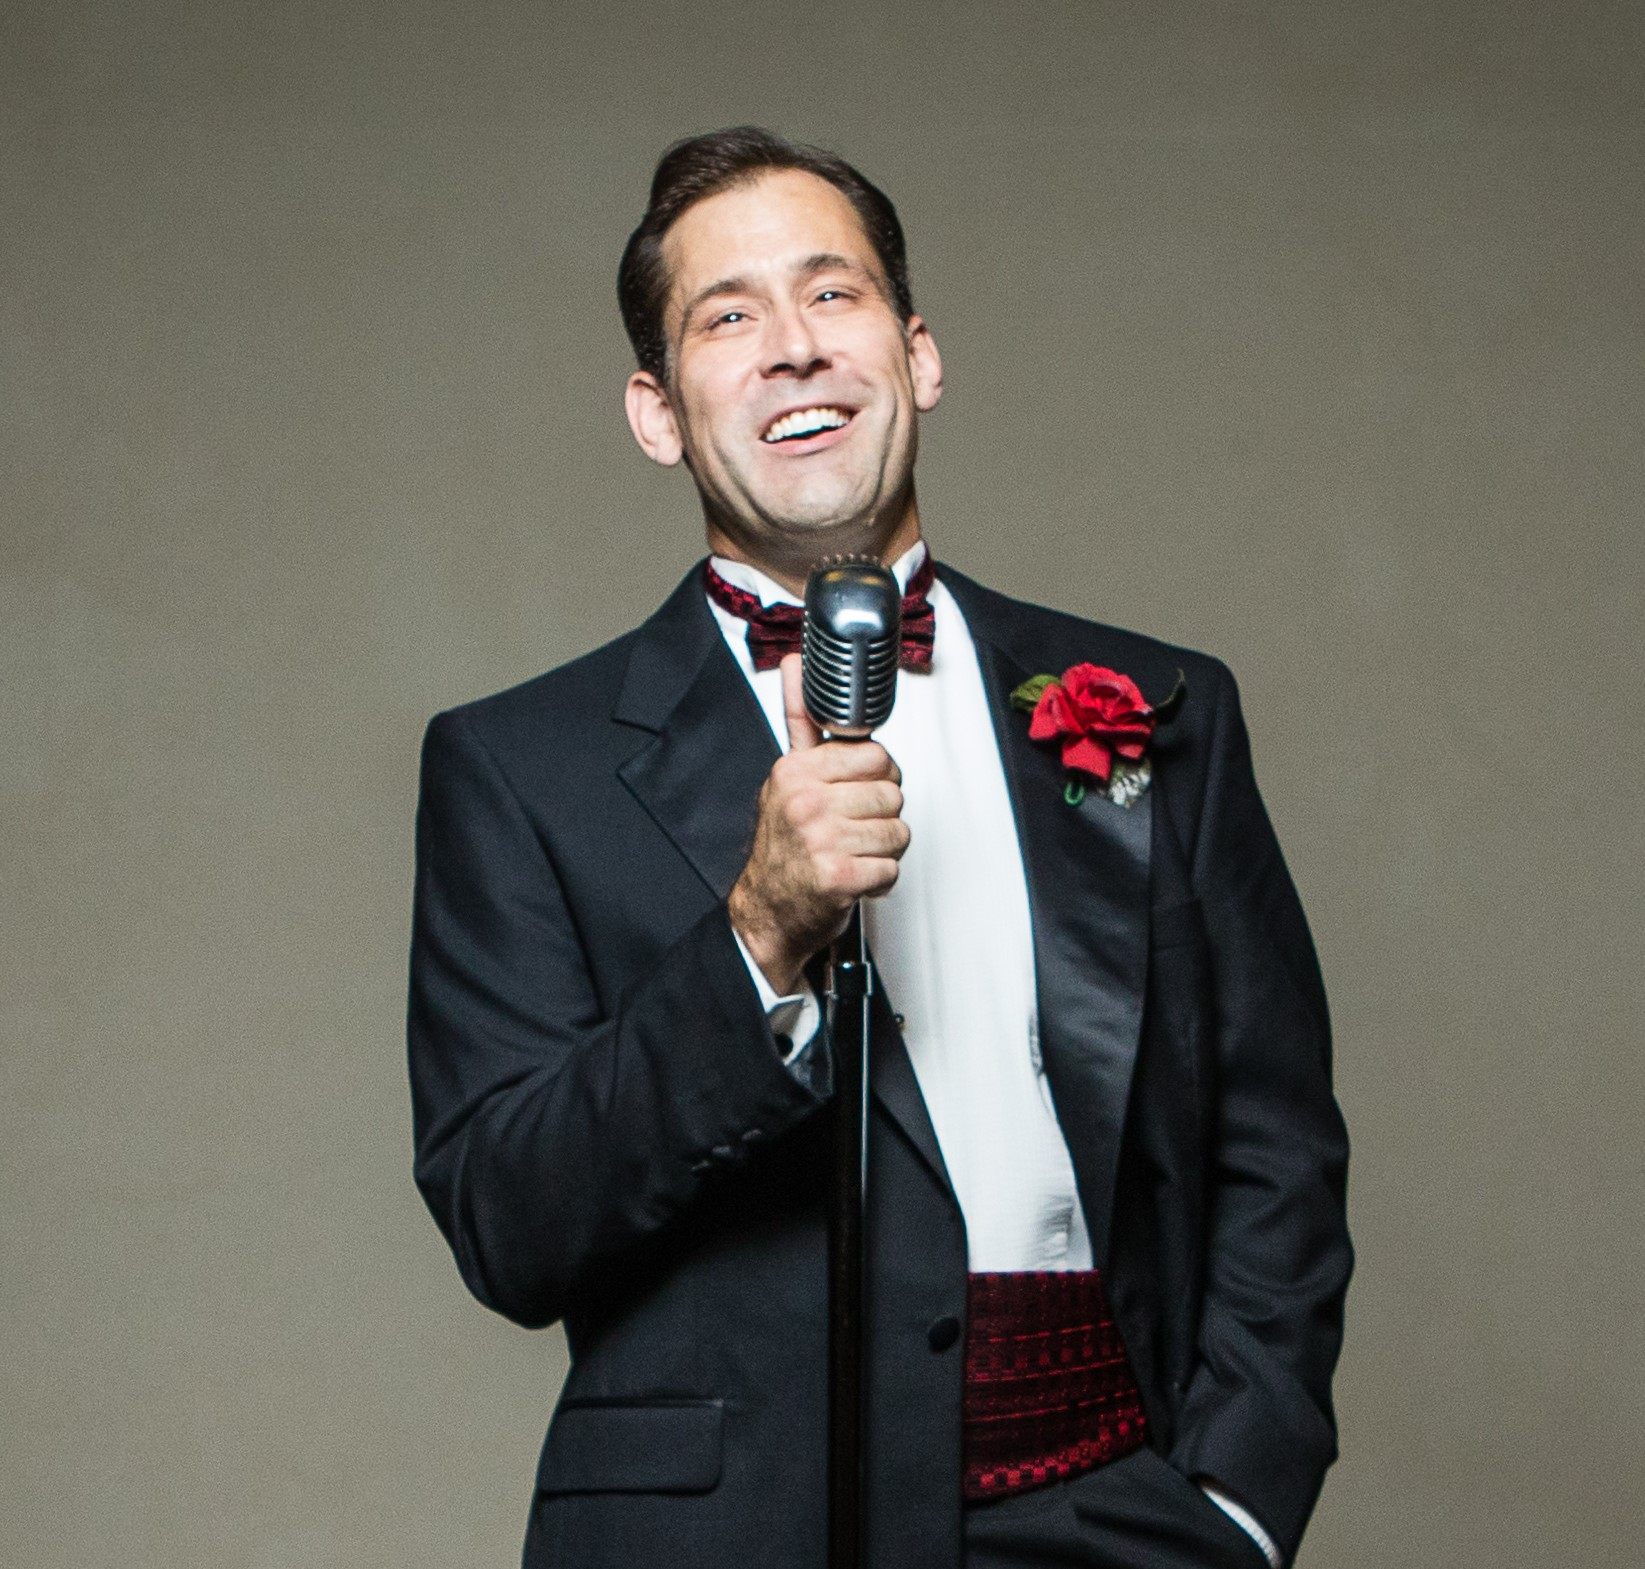 BWW Review: JOHNNY MANHATTAN at Meadow Brook Theatre is a new musical filled with heart and soul headed for Broadway!